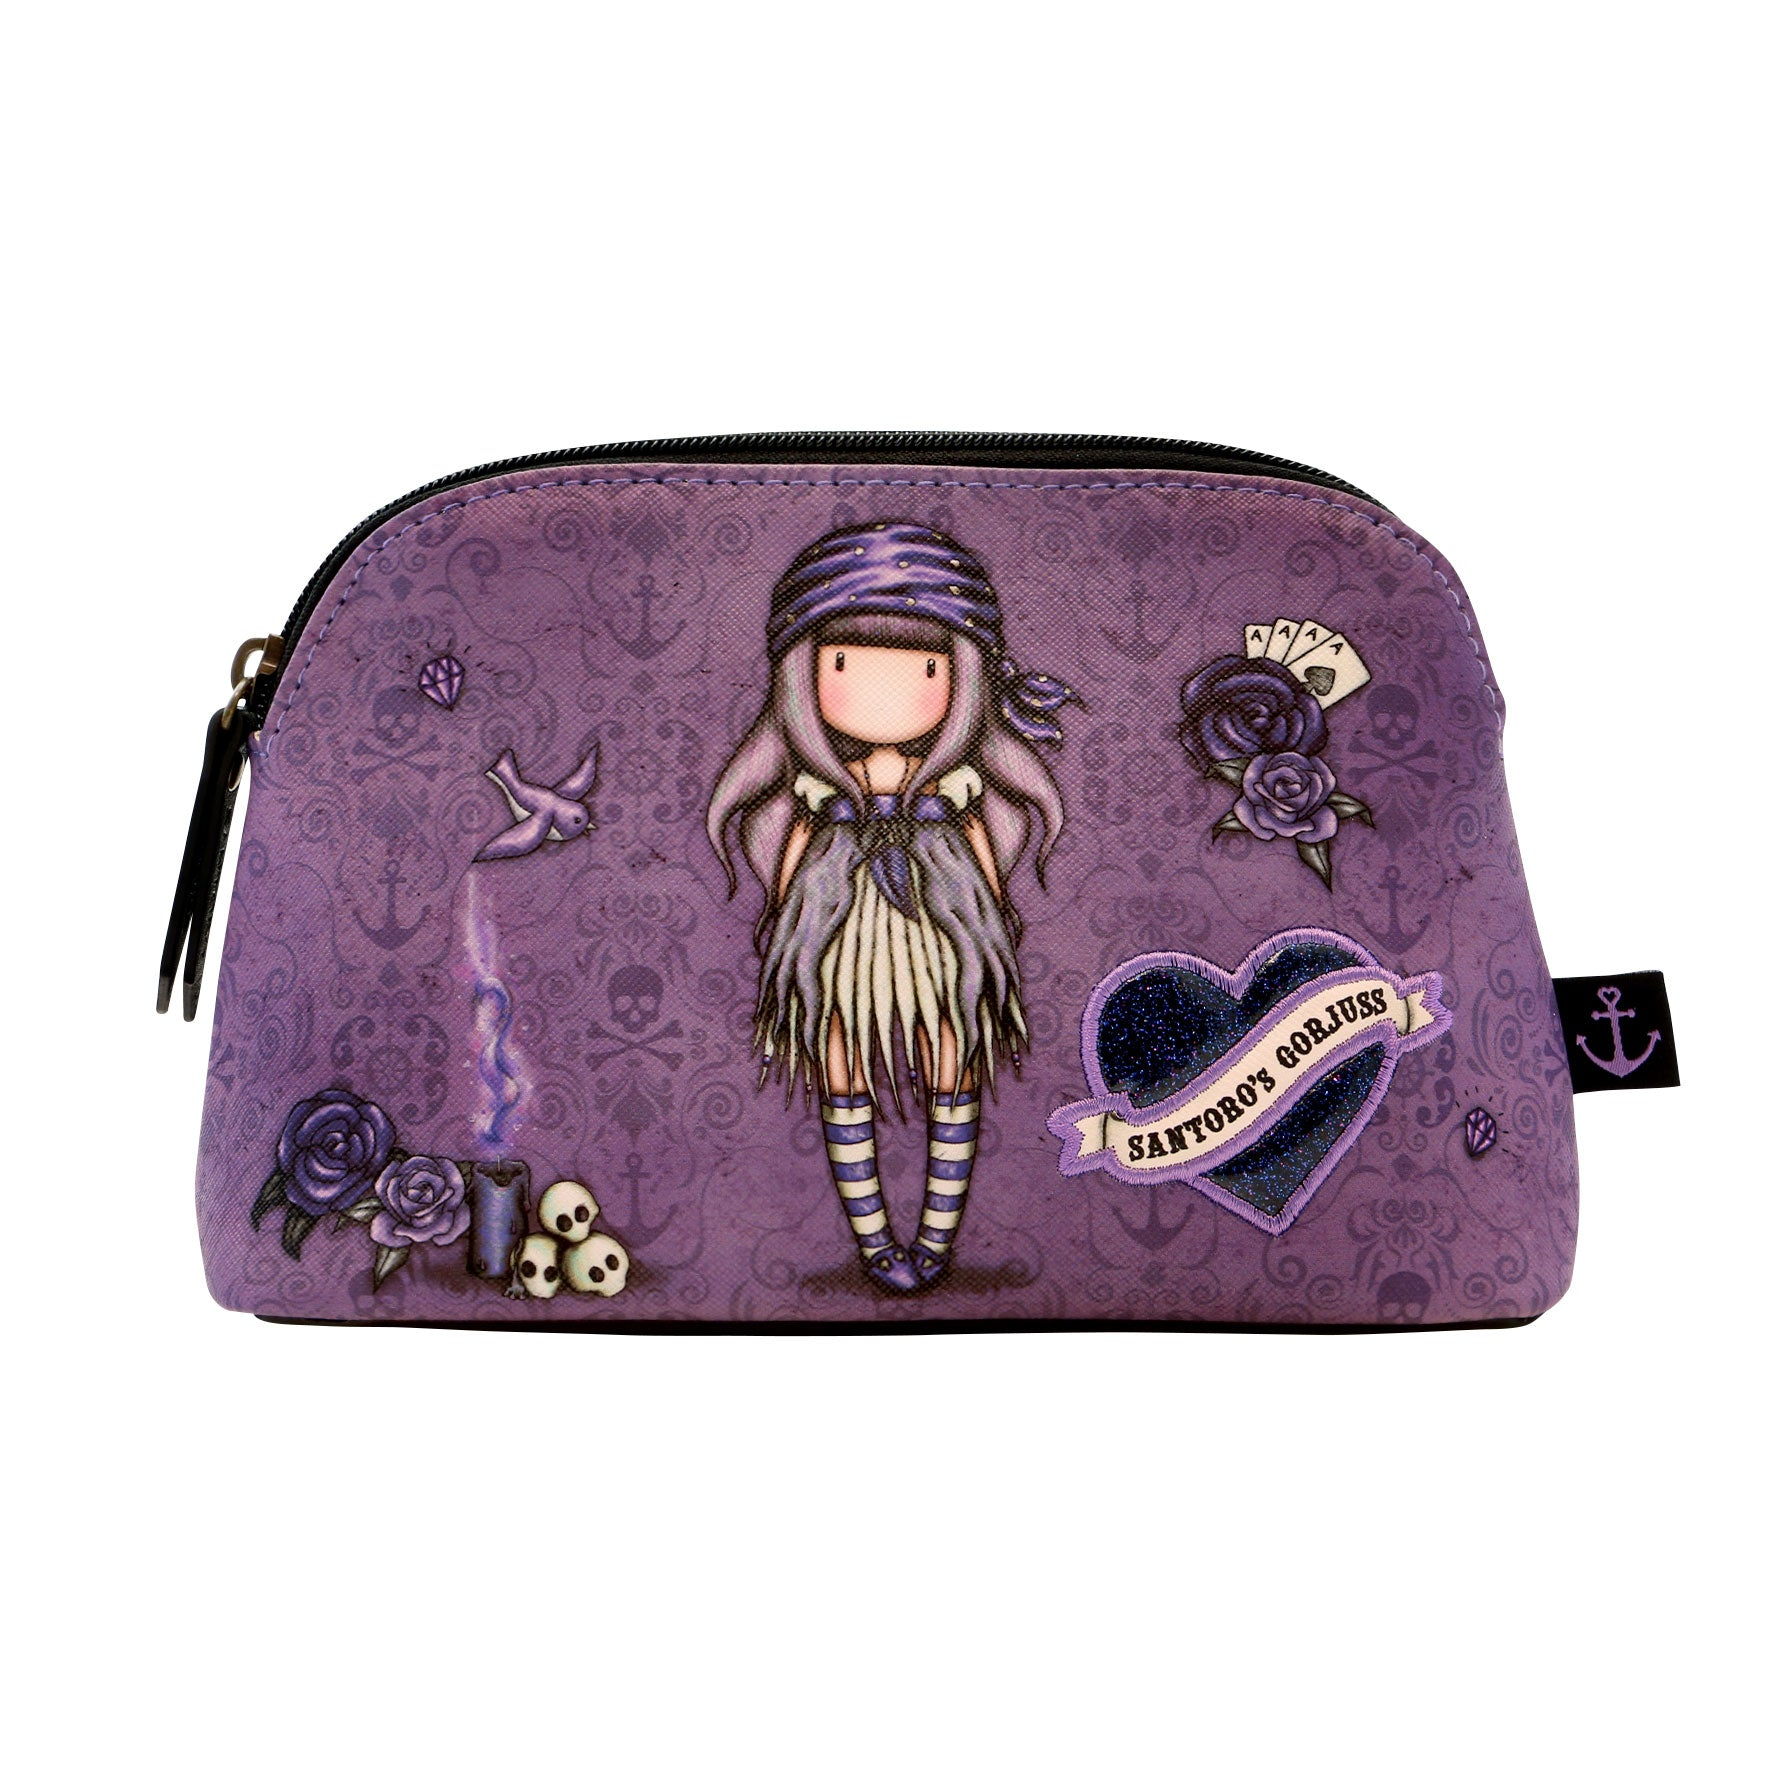 *NEW* from Gorjuss by Santoro London - Sea Nixie Accessories Case